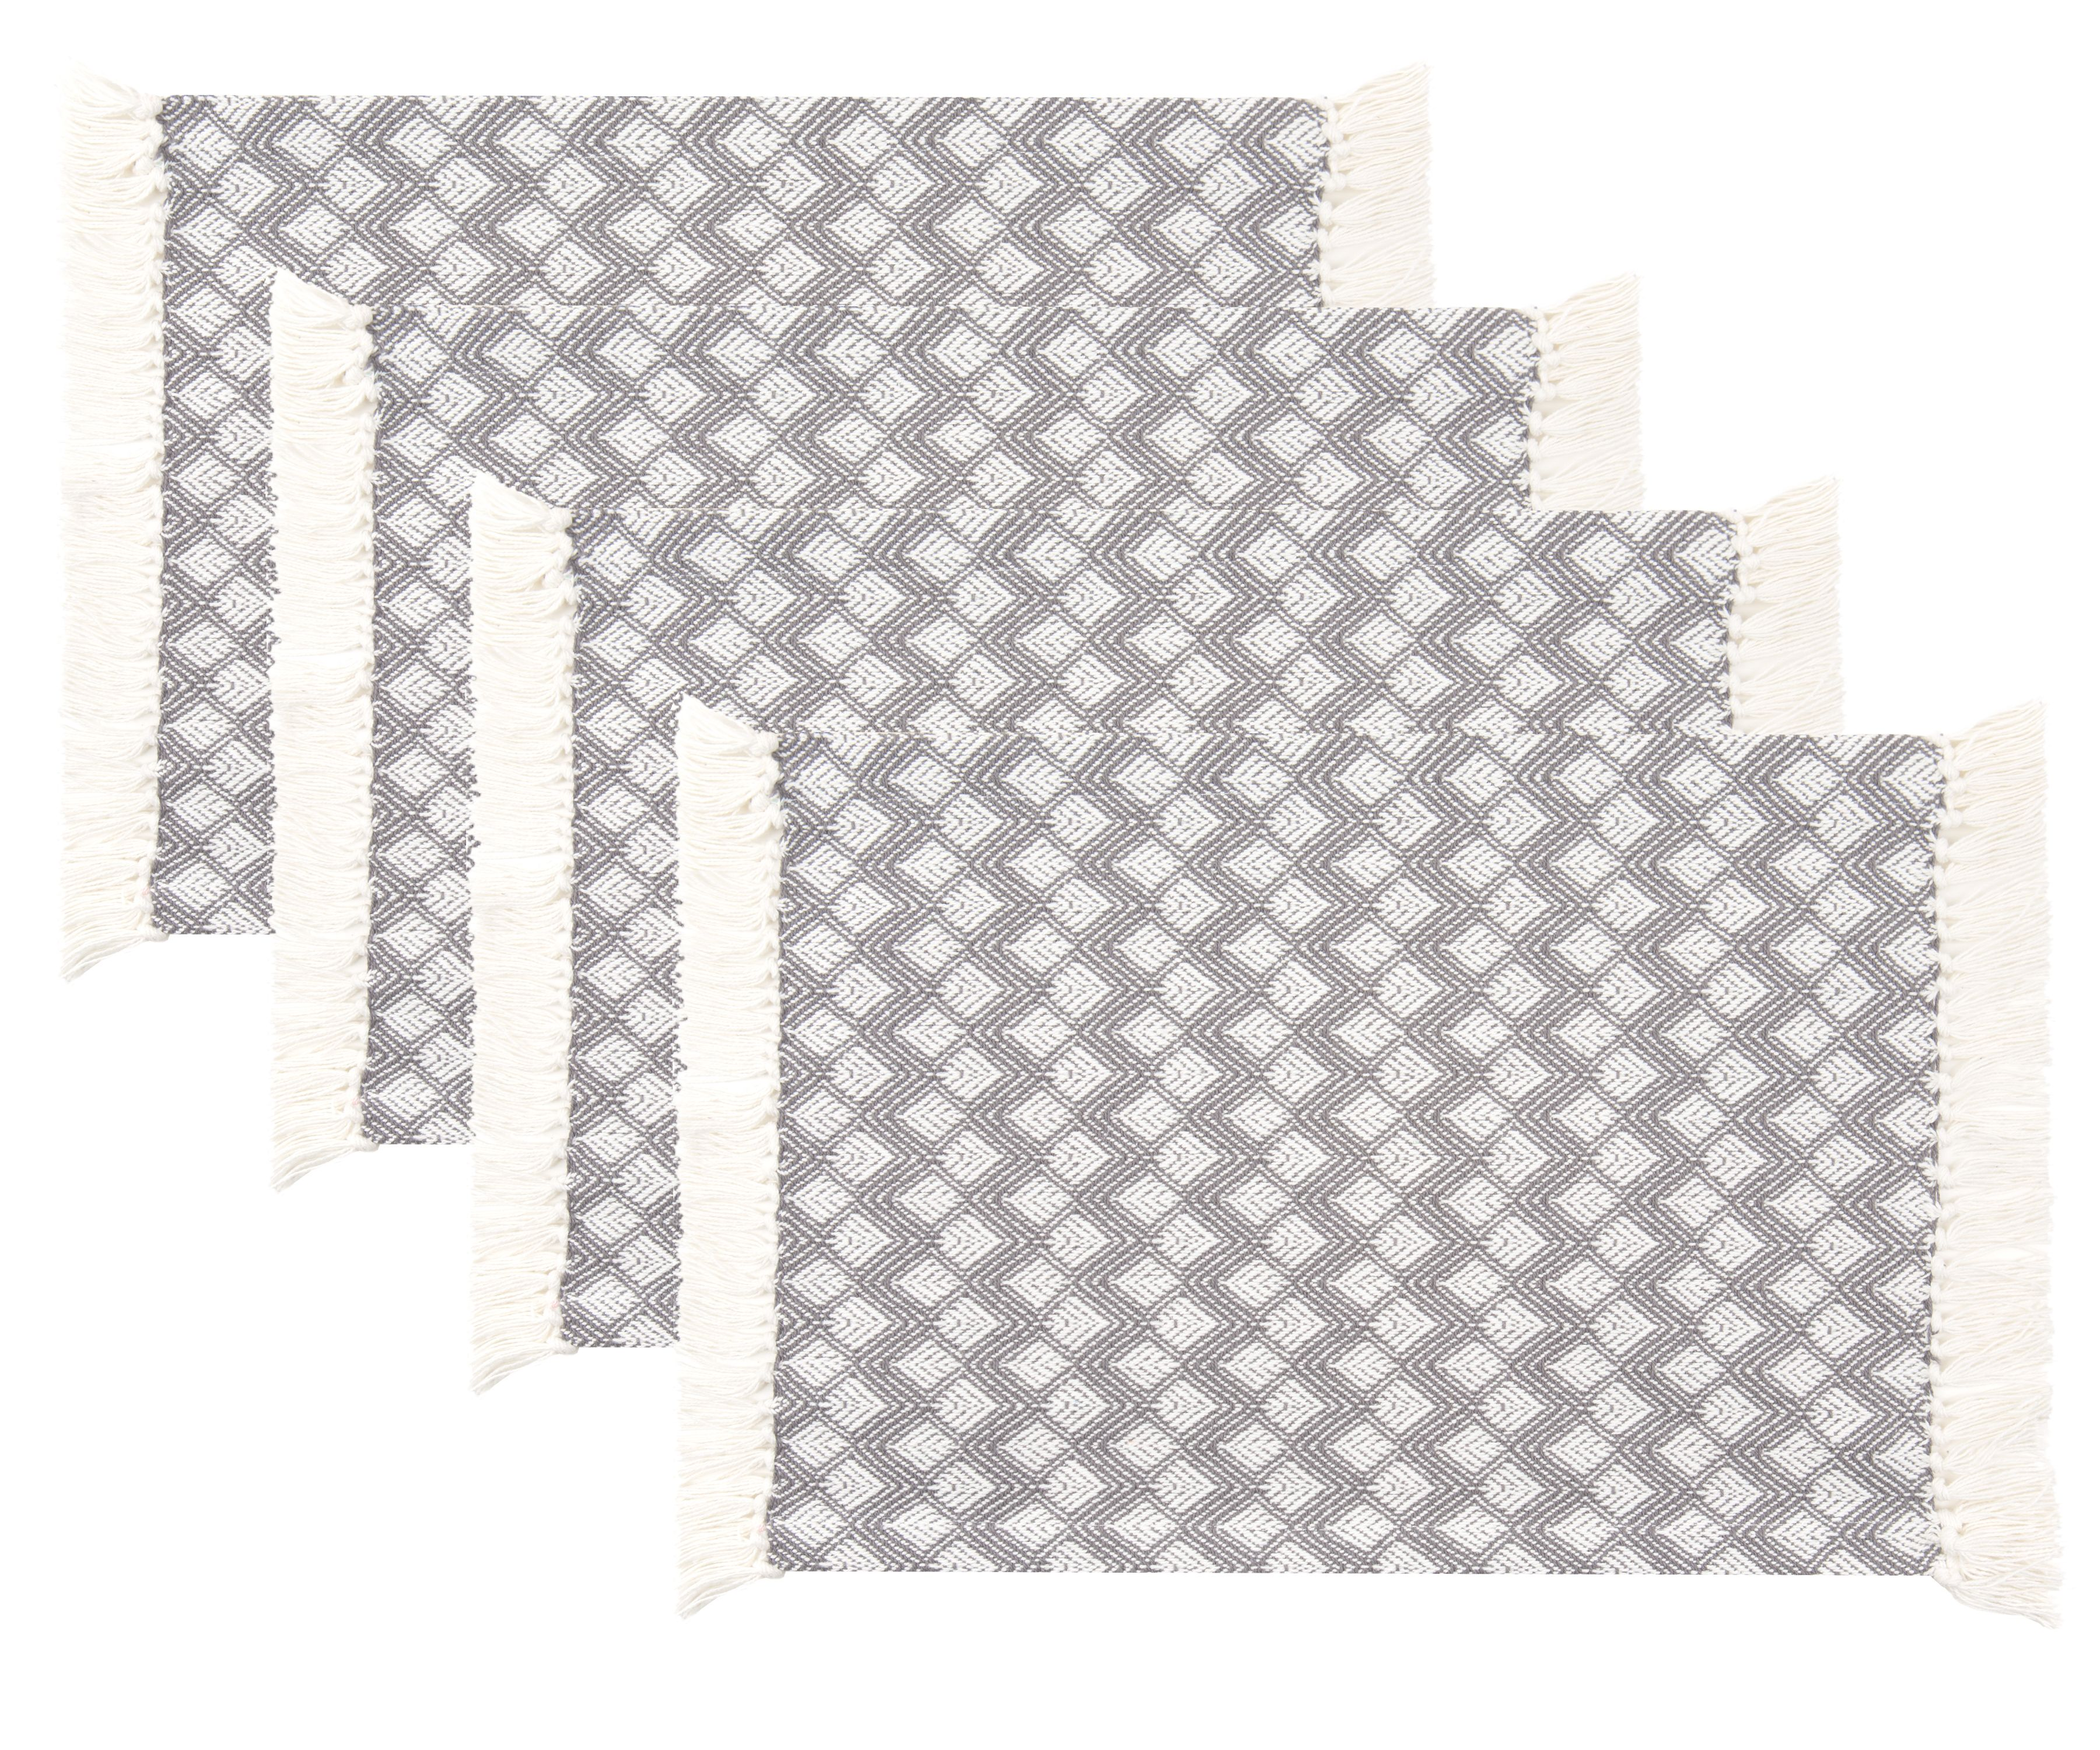 Sticky Toffee Cotton Woven Placemat Set With Fringe Scalloped Diamond 4 Pack Gray 14 In X 19 In Walmart Com Walmart Com